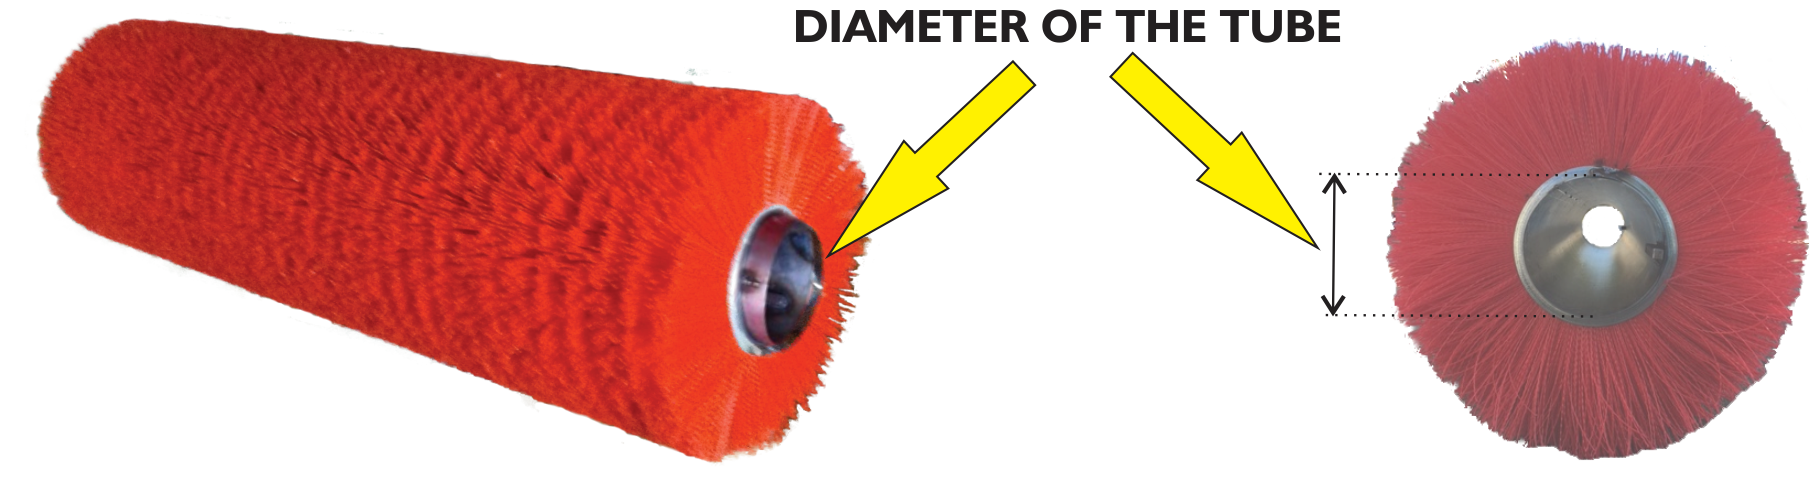 Measure the inside diameter